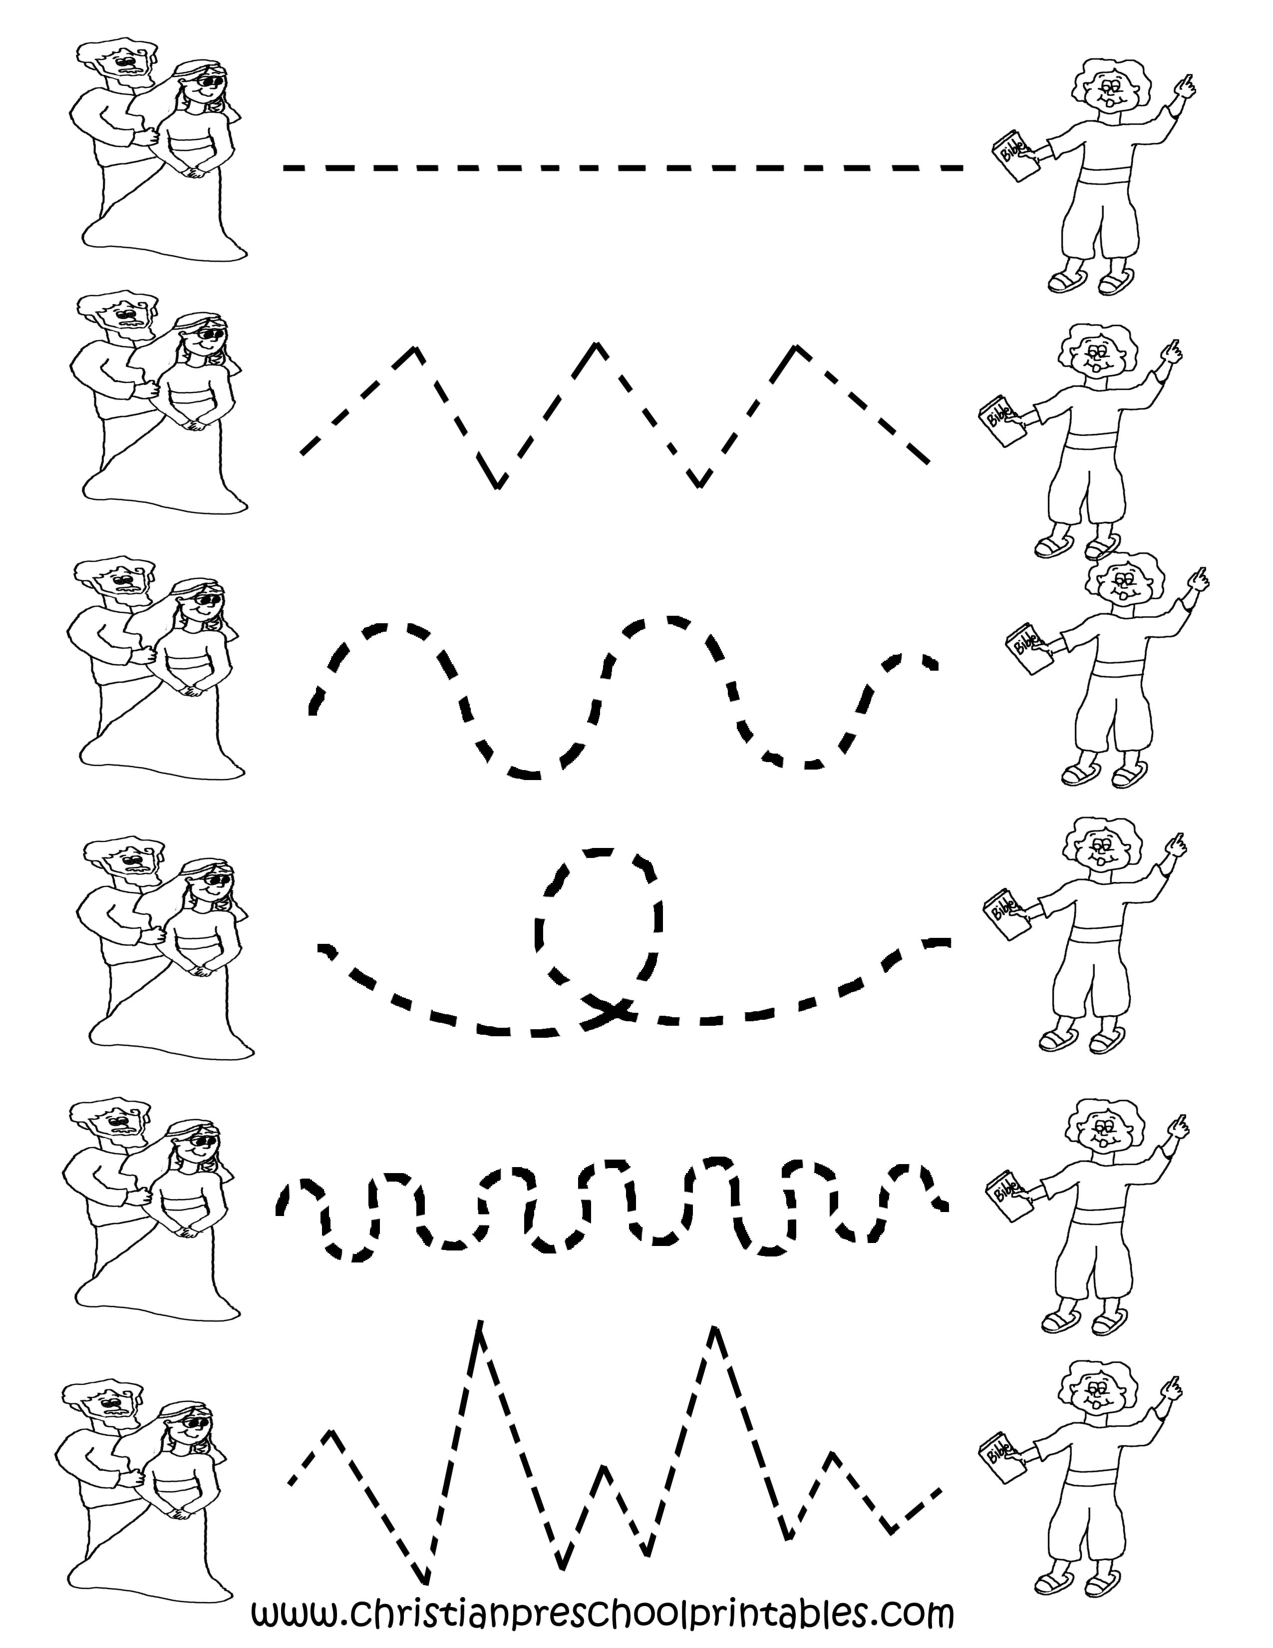 Image Detail For -Preschool Tracing Worksheets | Preschool Ideas | Printable Tracing Worksheets